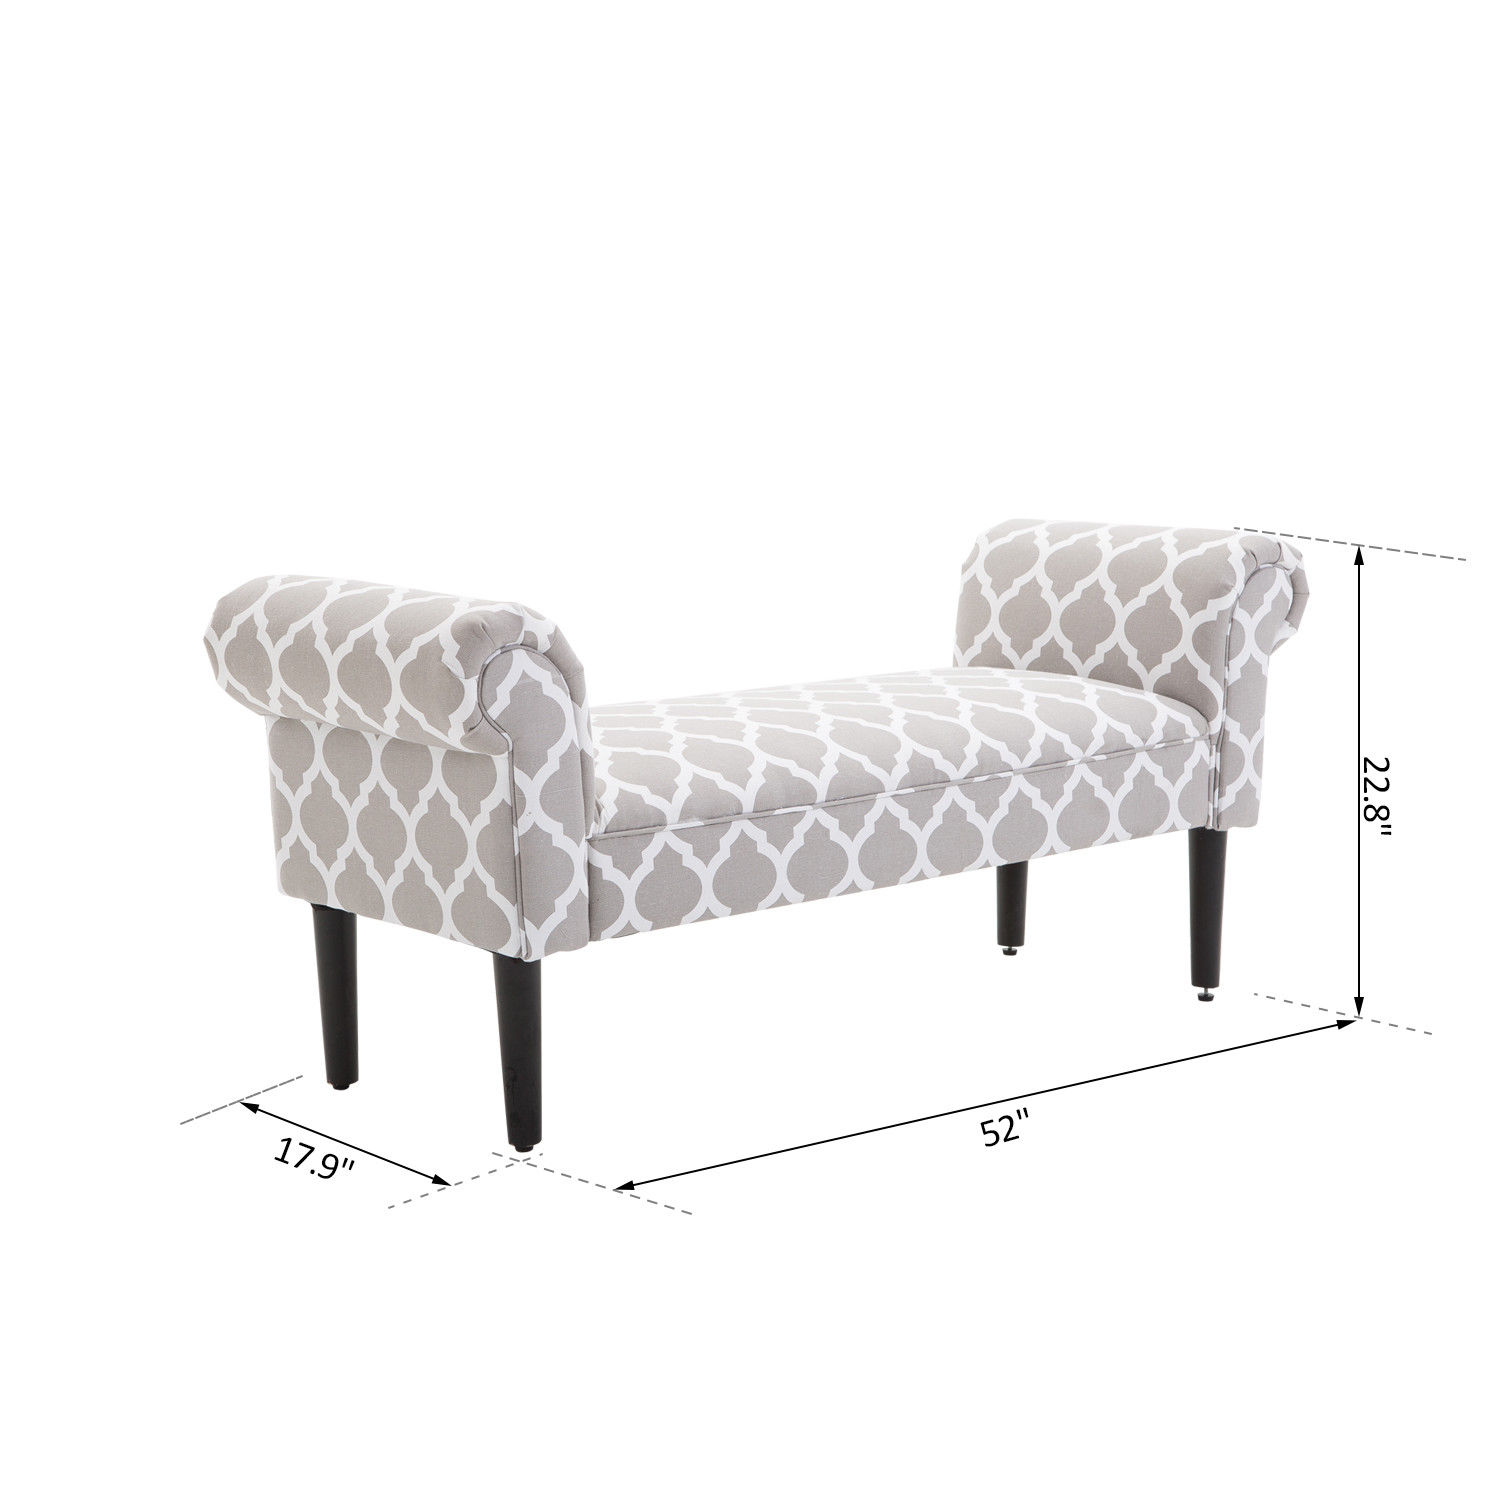 Elegant-Rolled-Arm-Bench-Bedside-End-of-Bed-Footstool-w-Arms-2-SIZE thumbnail 12